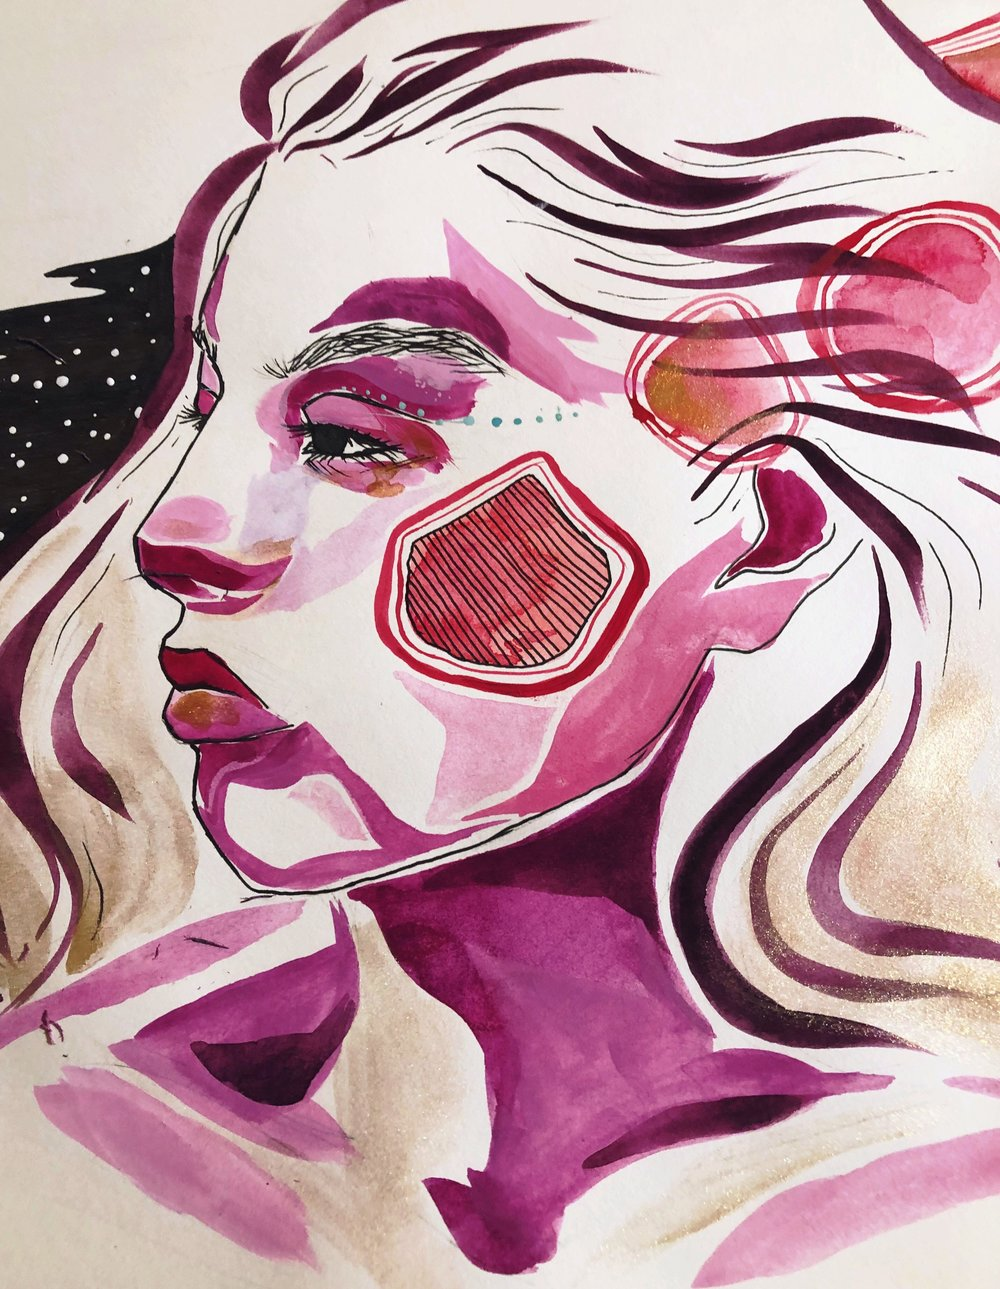 Idealism by Mia Pensa, gouache on paper